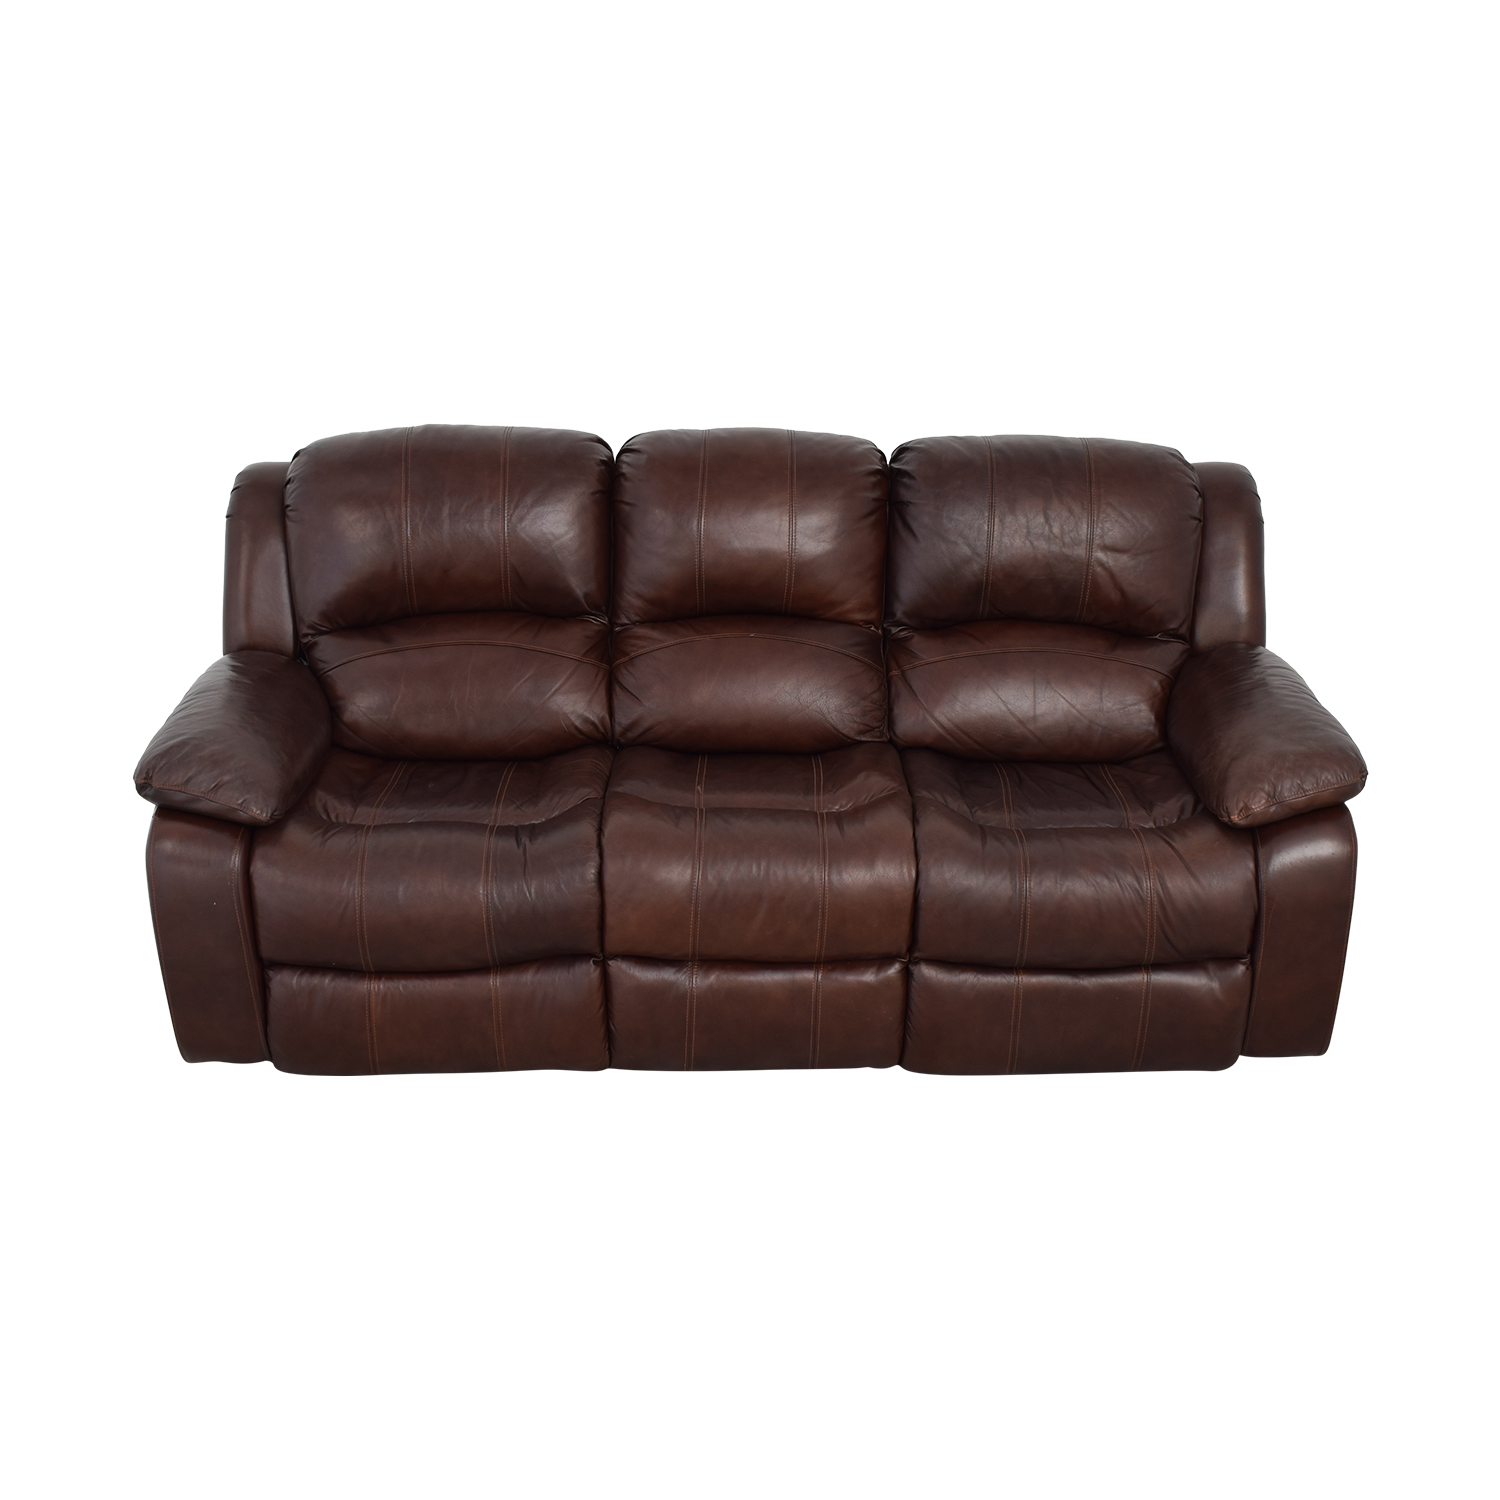 Raymour & Flanigan Raymour & Flanigan Brown Leather Reclining Sofa for sale